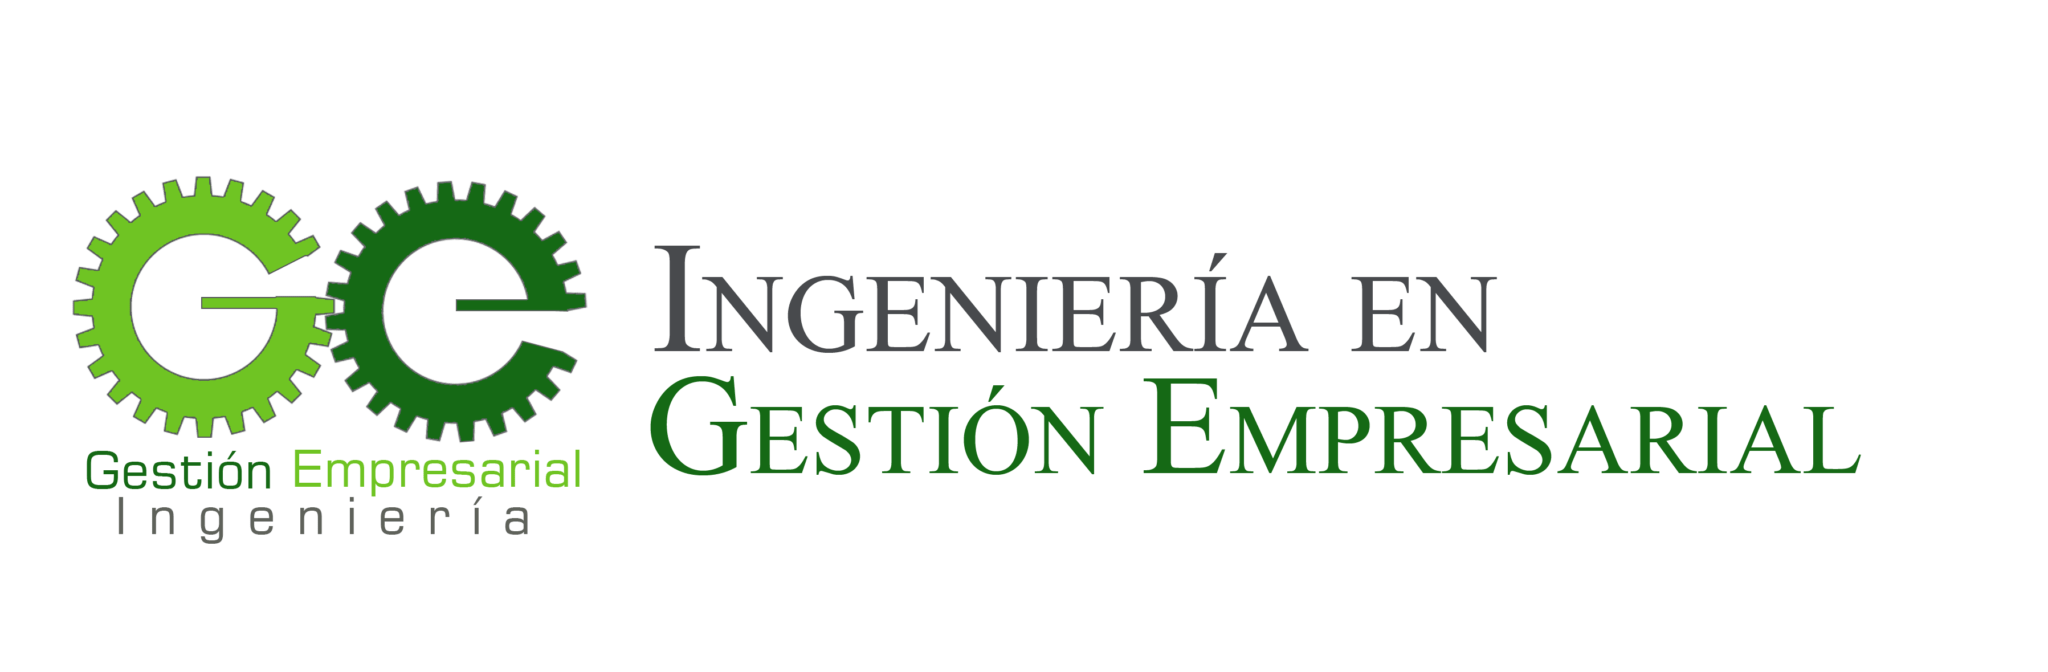 GESTION EMPRESARIAL_HEADING